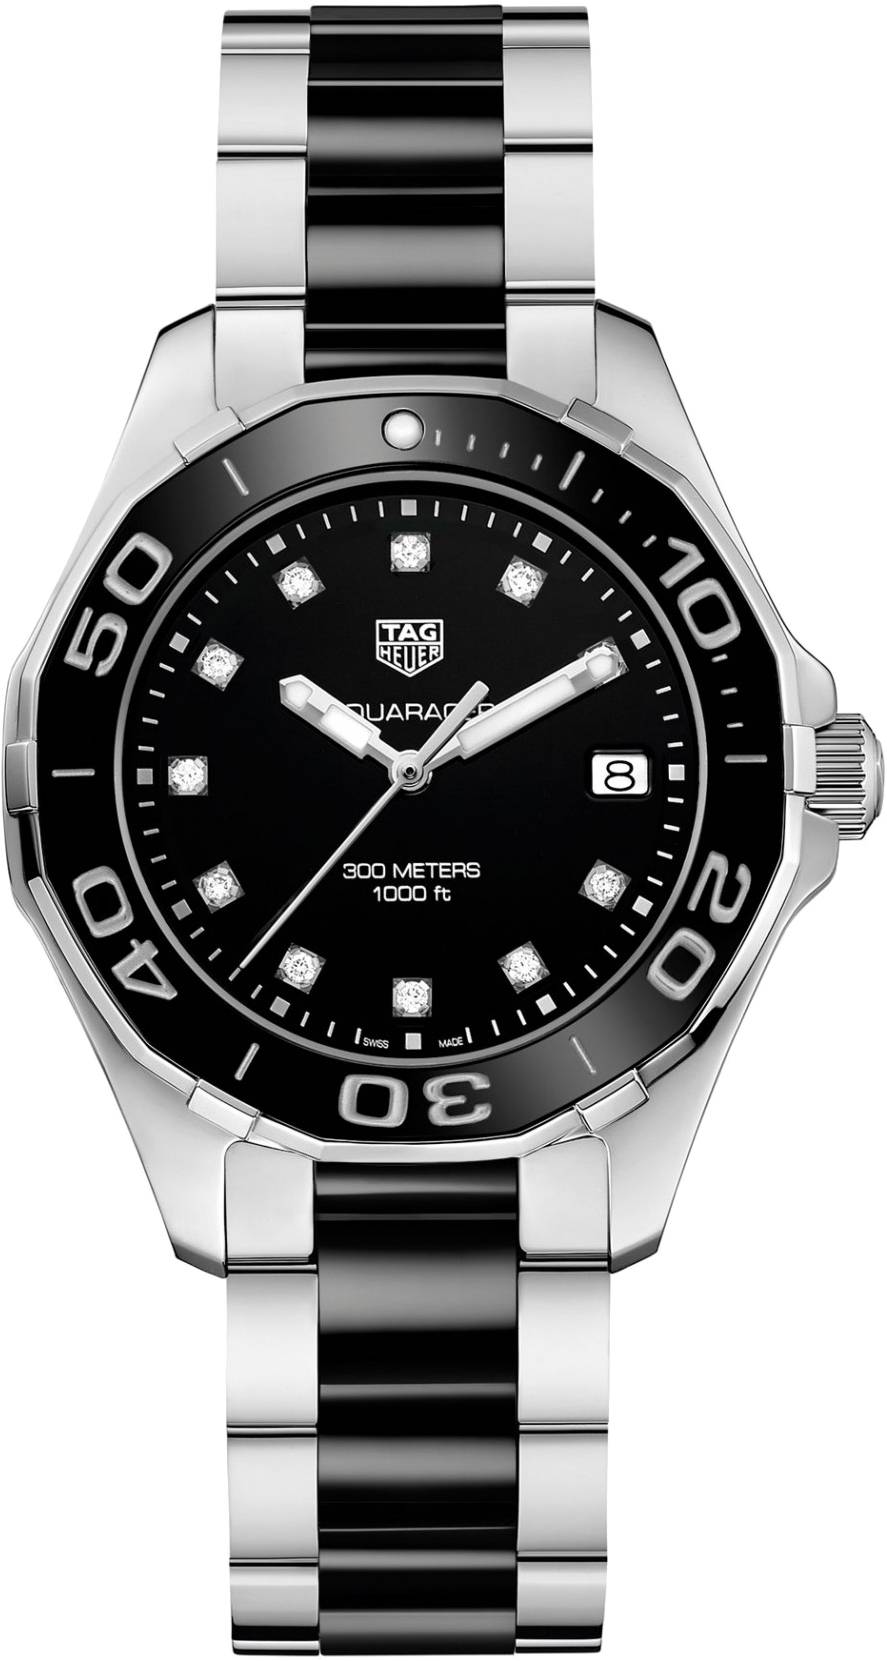 Way131c ba0913 tag heuer aquaracer for Tag heuer women